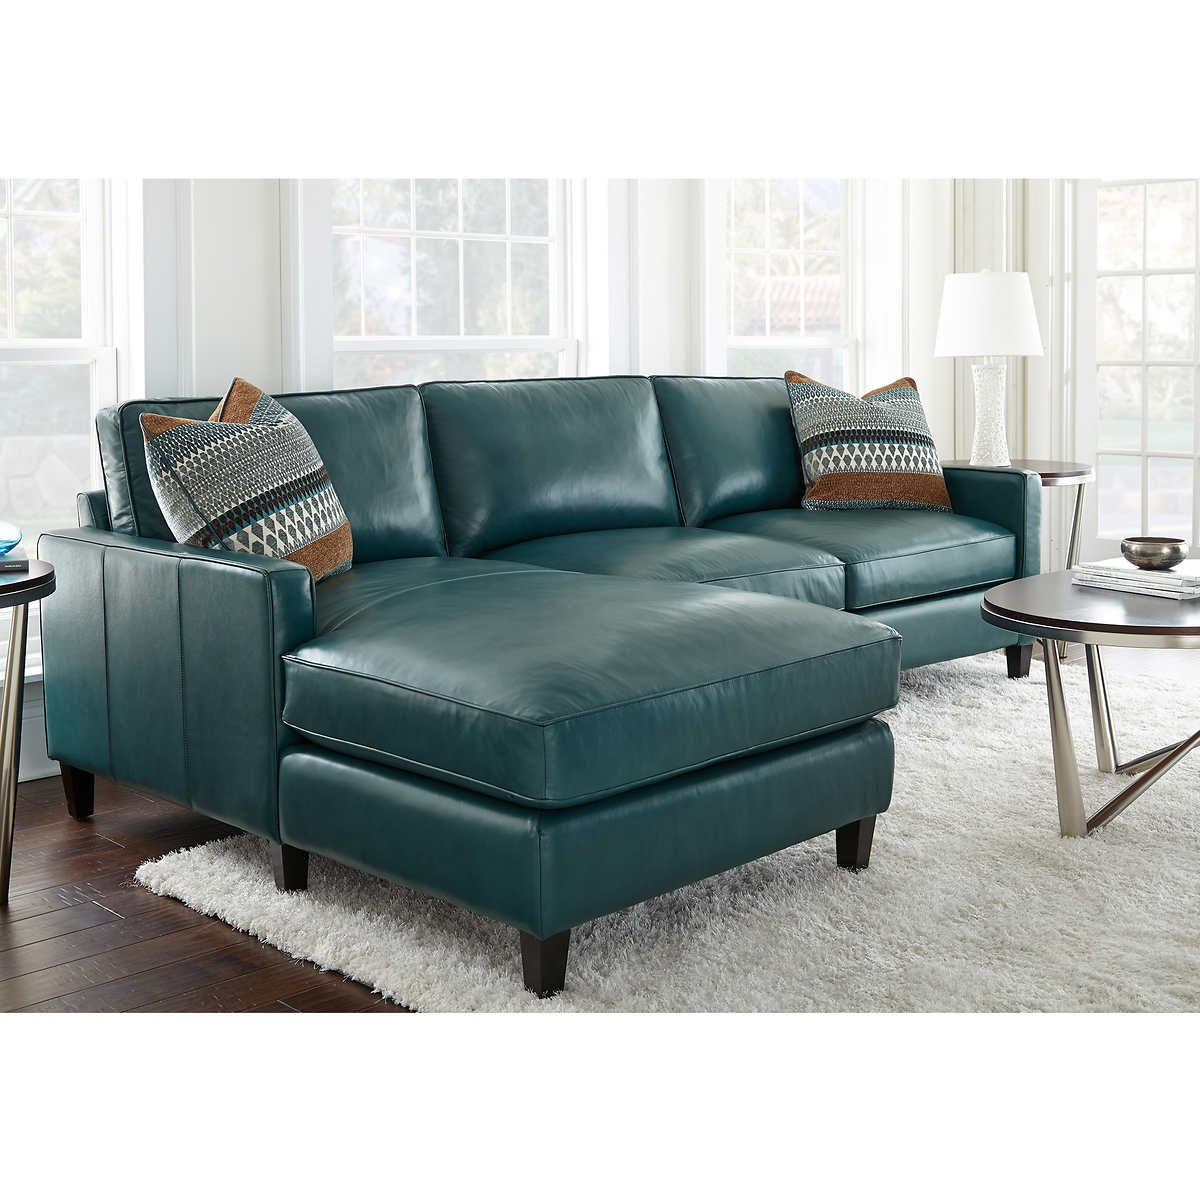 Andersen Top Grain Leather Chaise Sectional Dark Turquoise Leather Chaise Sectional Blue Leather Couch Blue Leather Sofa